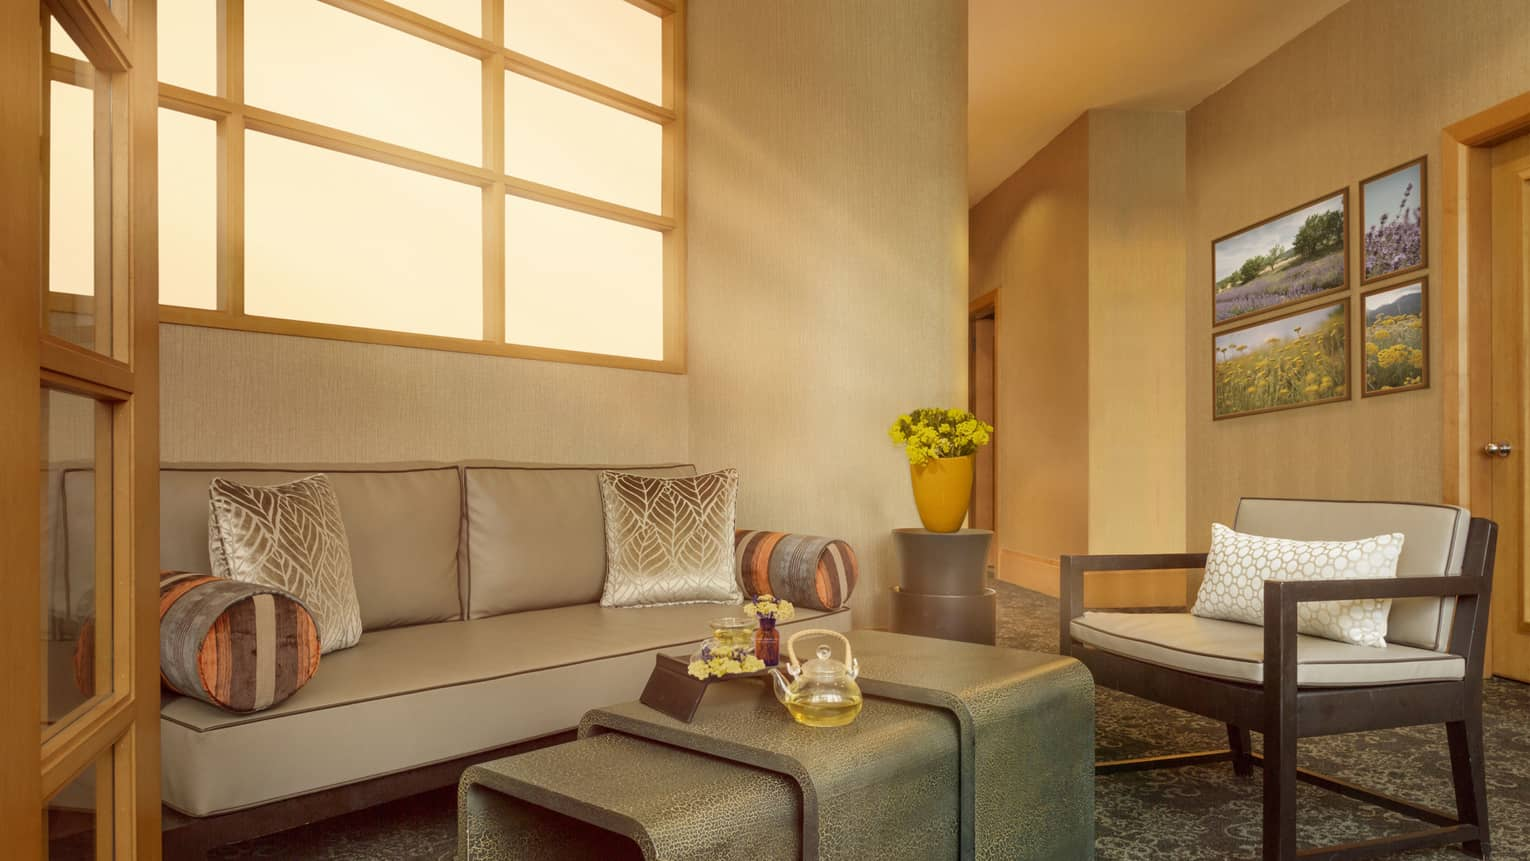 Spa seating area with couches, art on the wall, and windows letting in warm sunlight